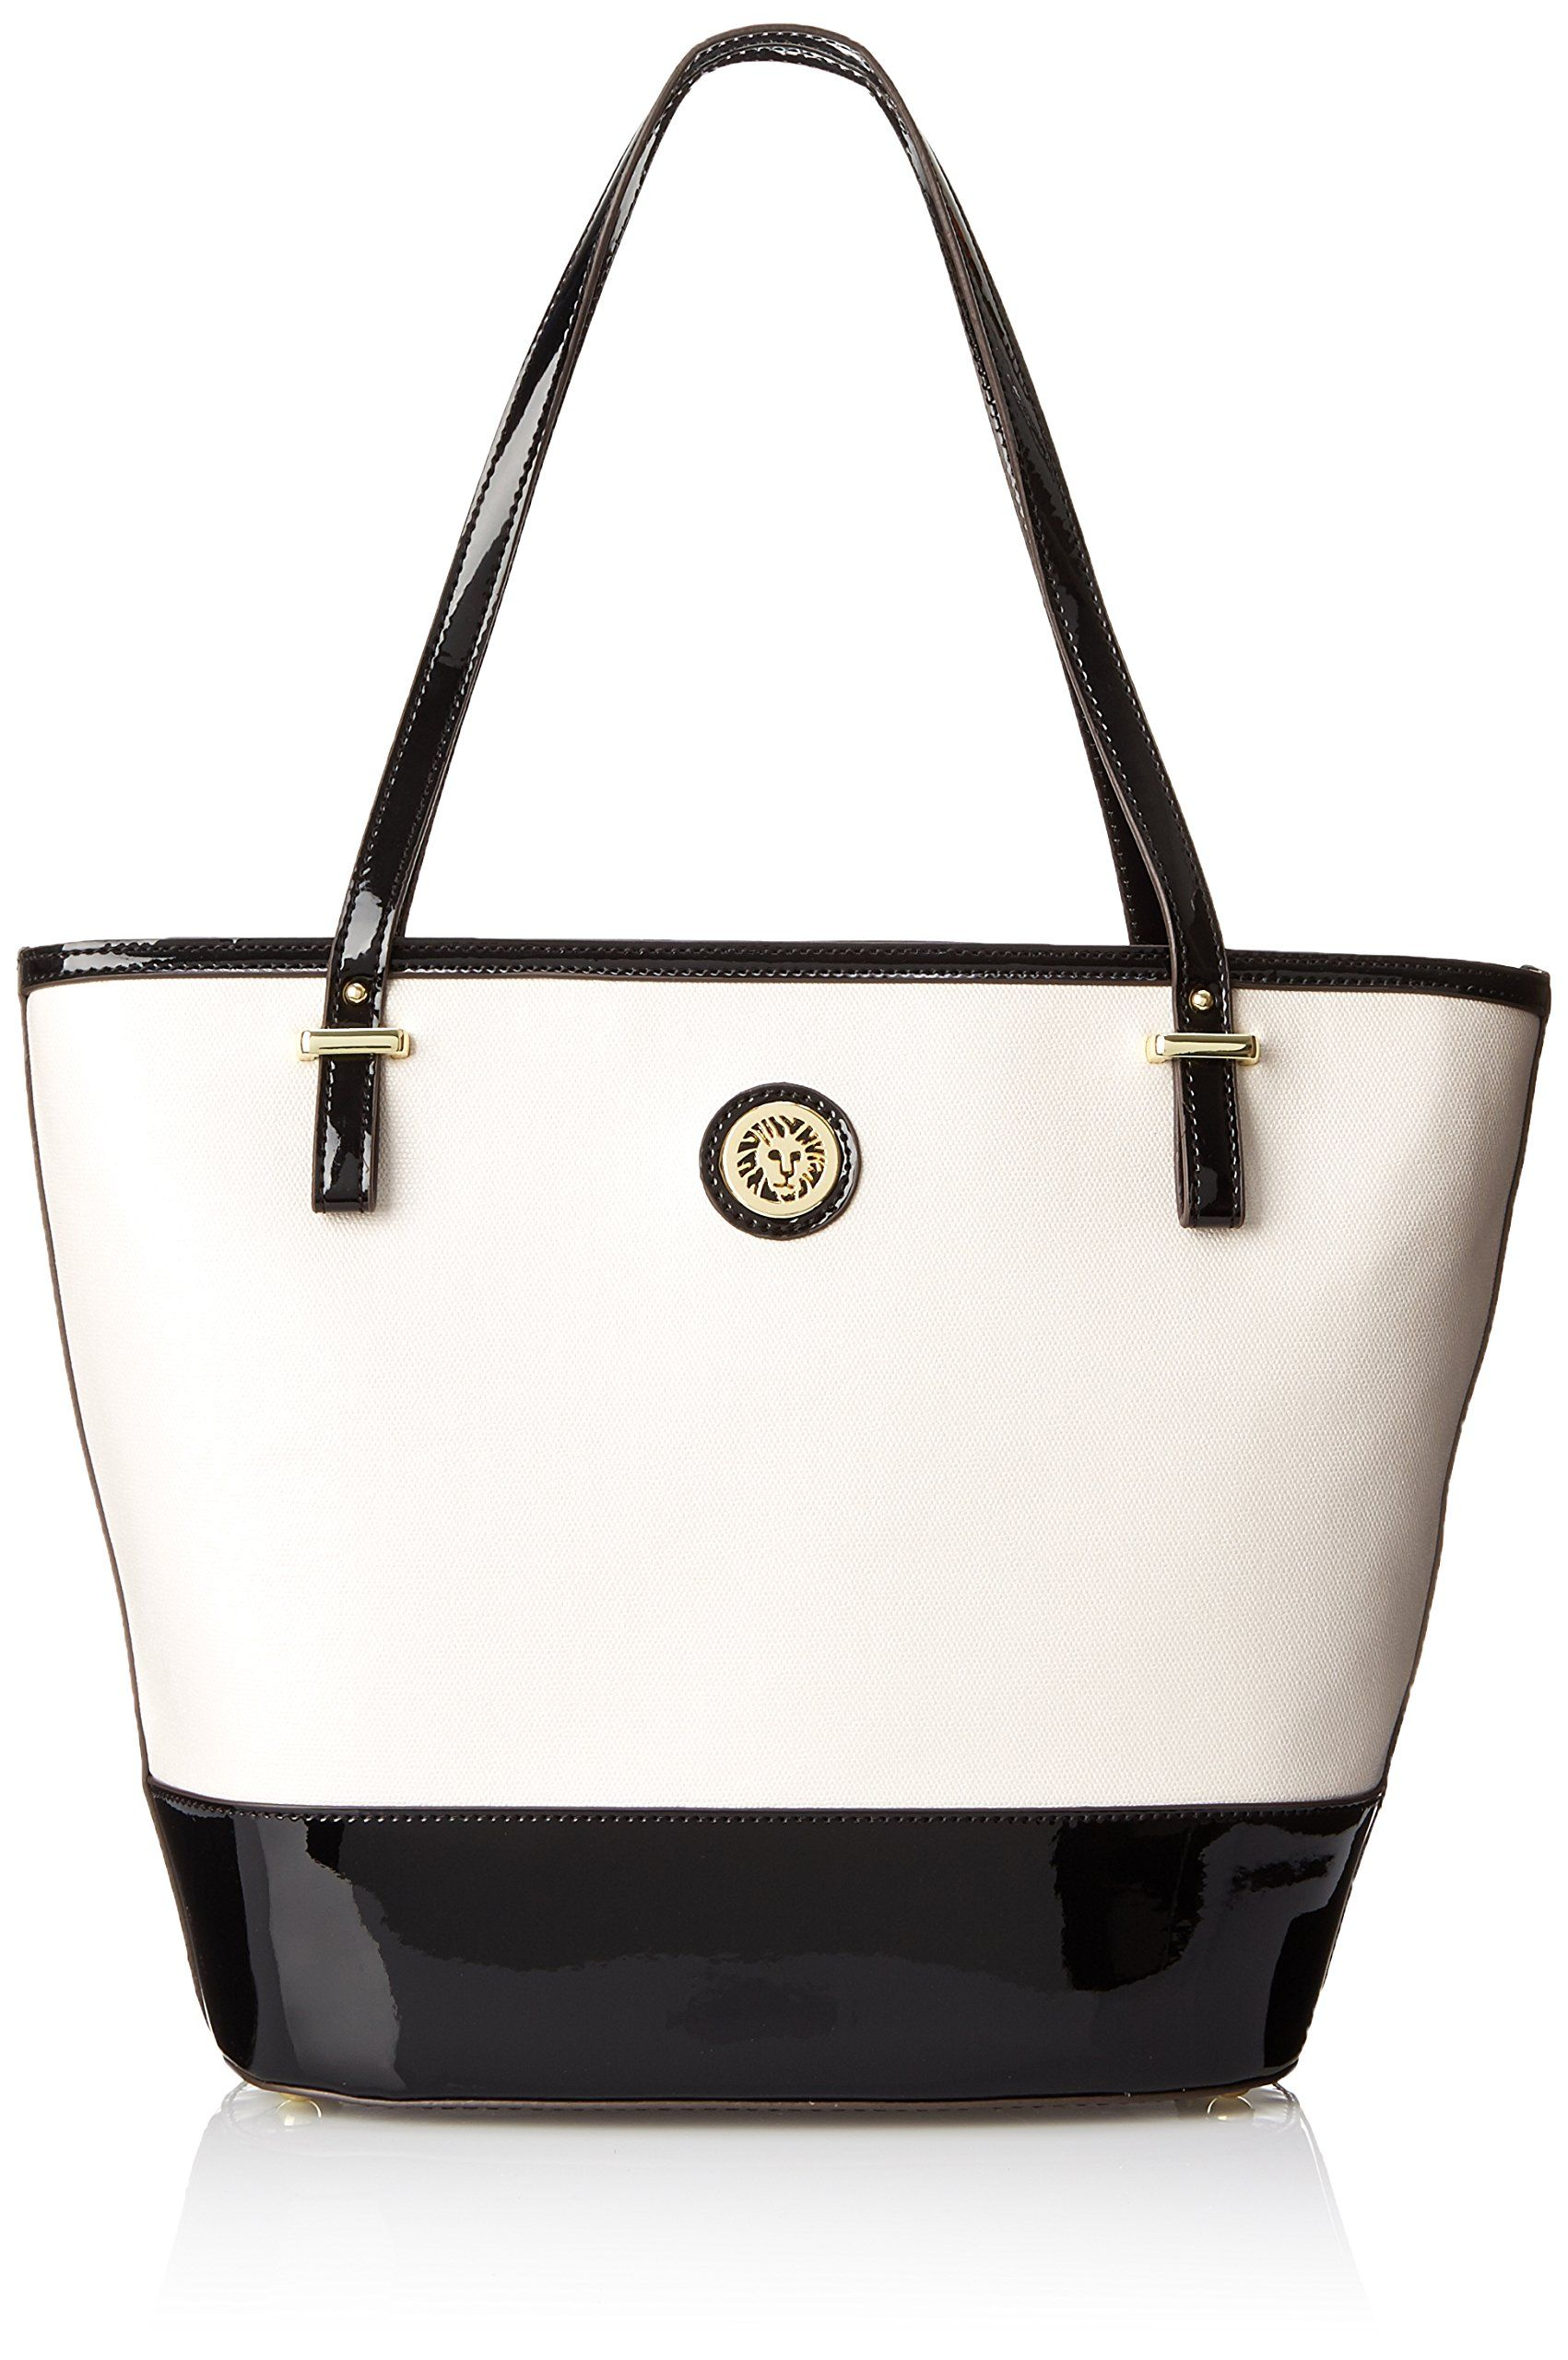 Shopping chanel fever tote bag replica advise to wear in winter in 2019